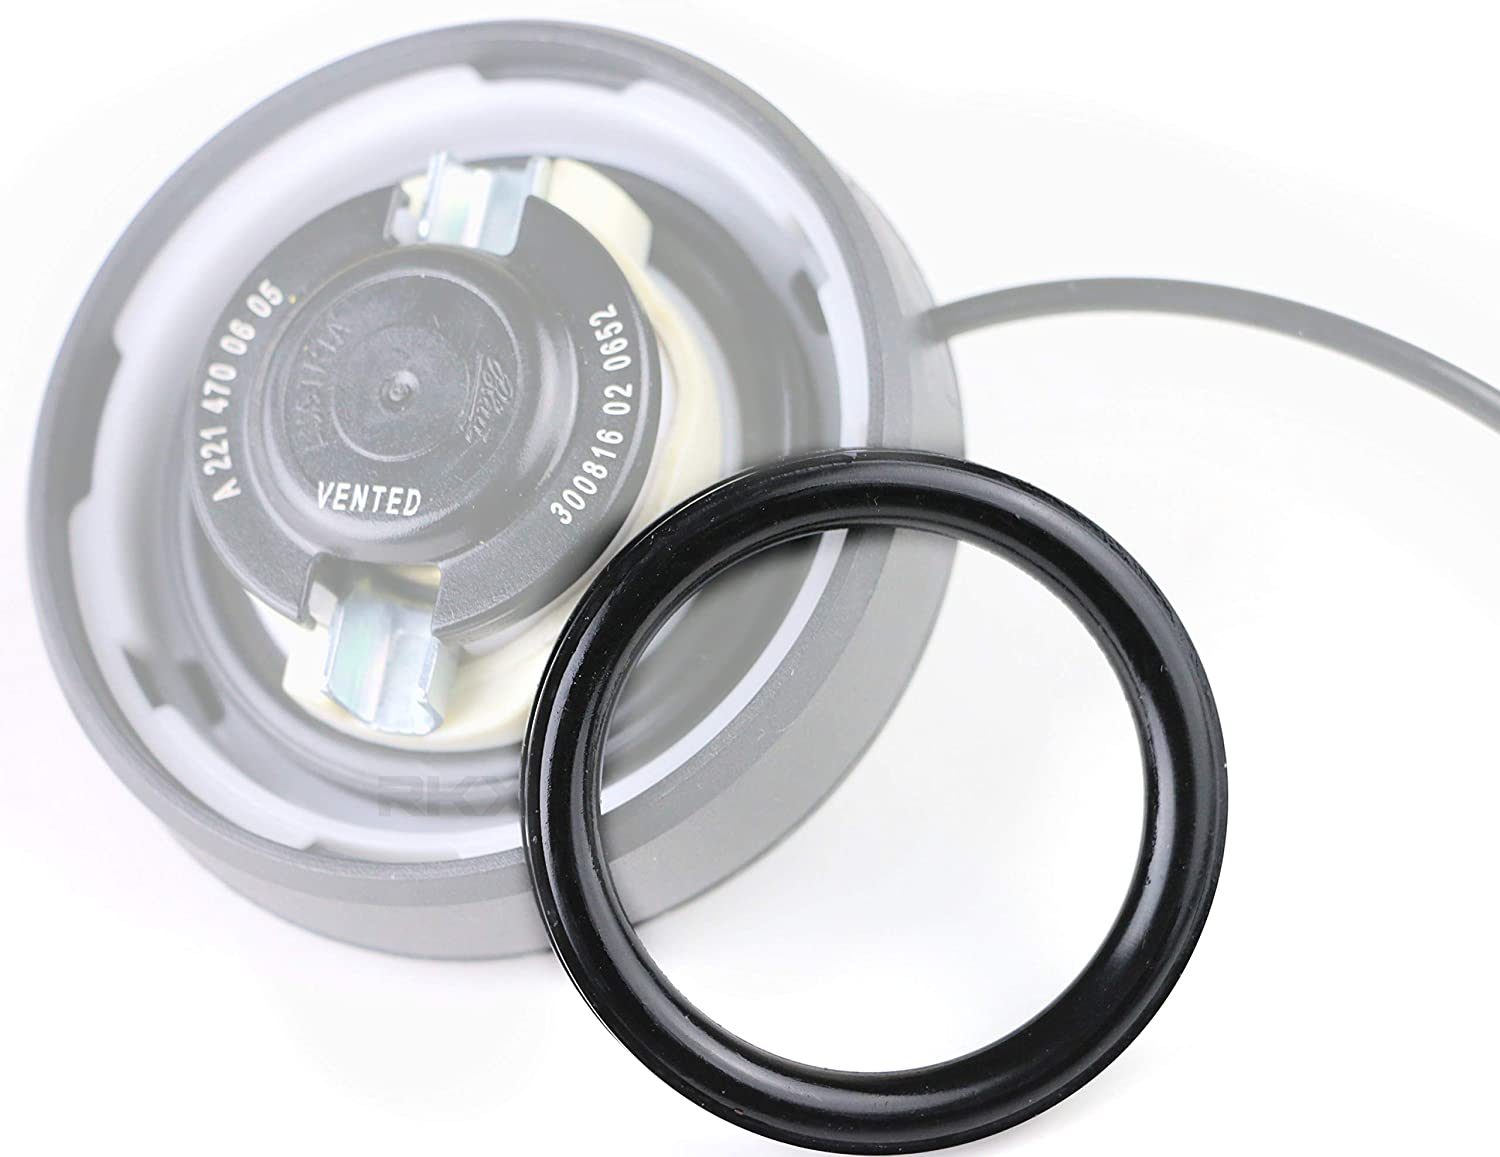 Amazon.com: RKX Gas cap replacement Fuel Seal FOR MERCEDES - O ring 1684710679 W209 W203 W216: Automotive